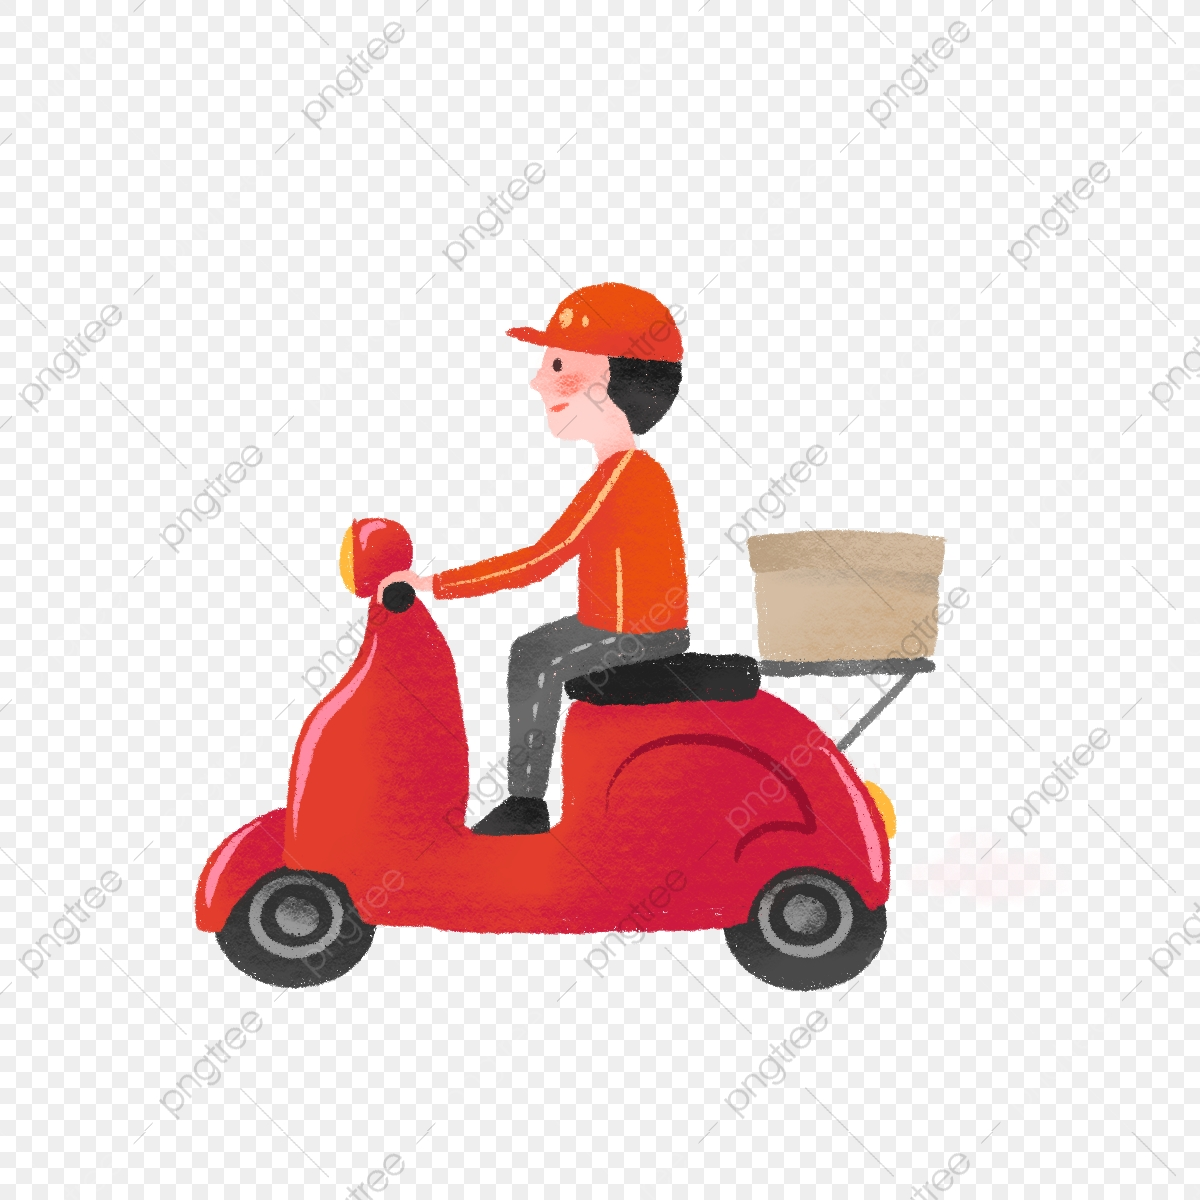 Delivery Guy Png - Hand Drawn Cute Delivery Guy, Express, Motorcycle, Parcel PNG ...